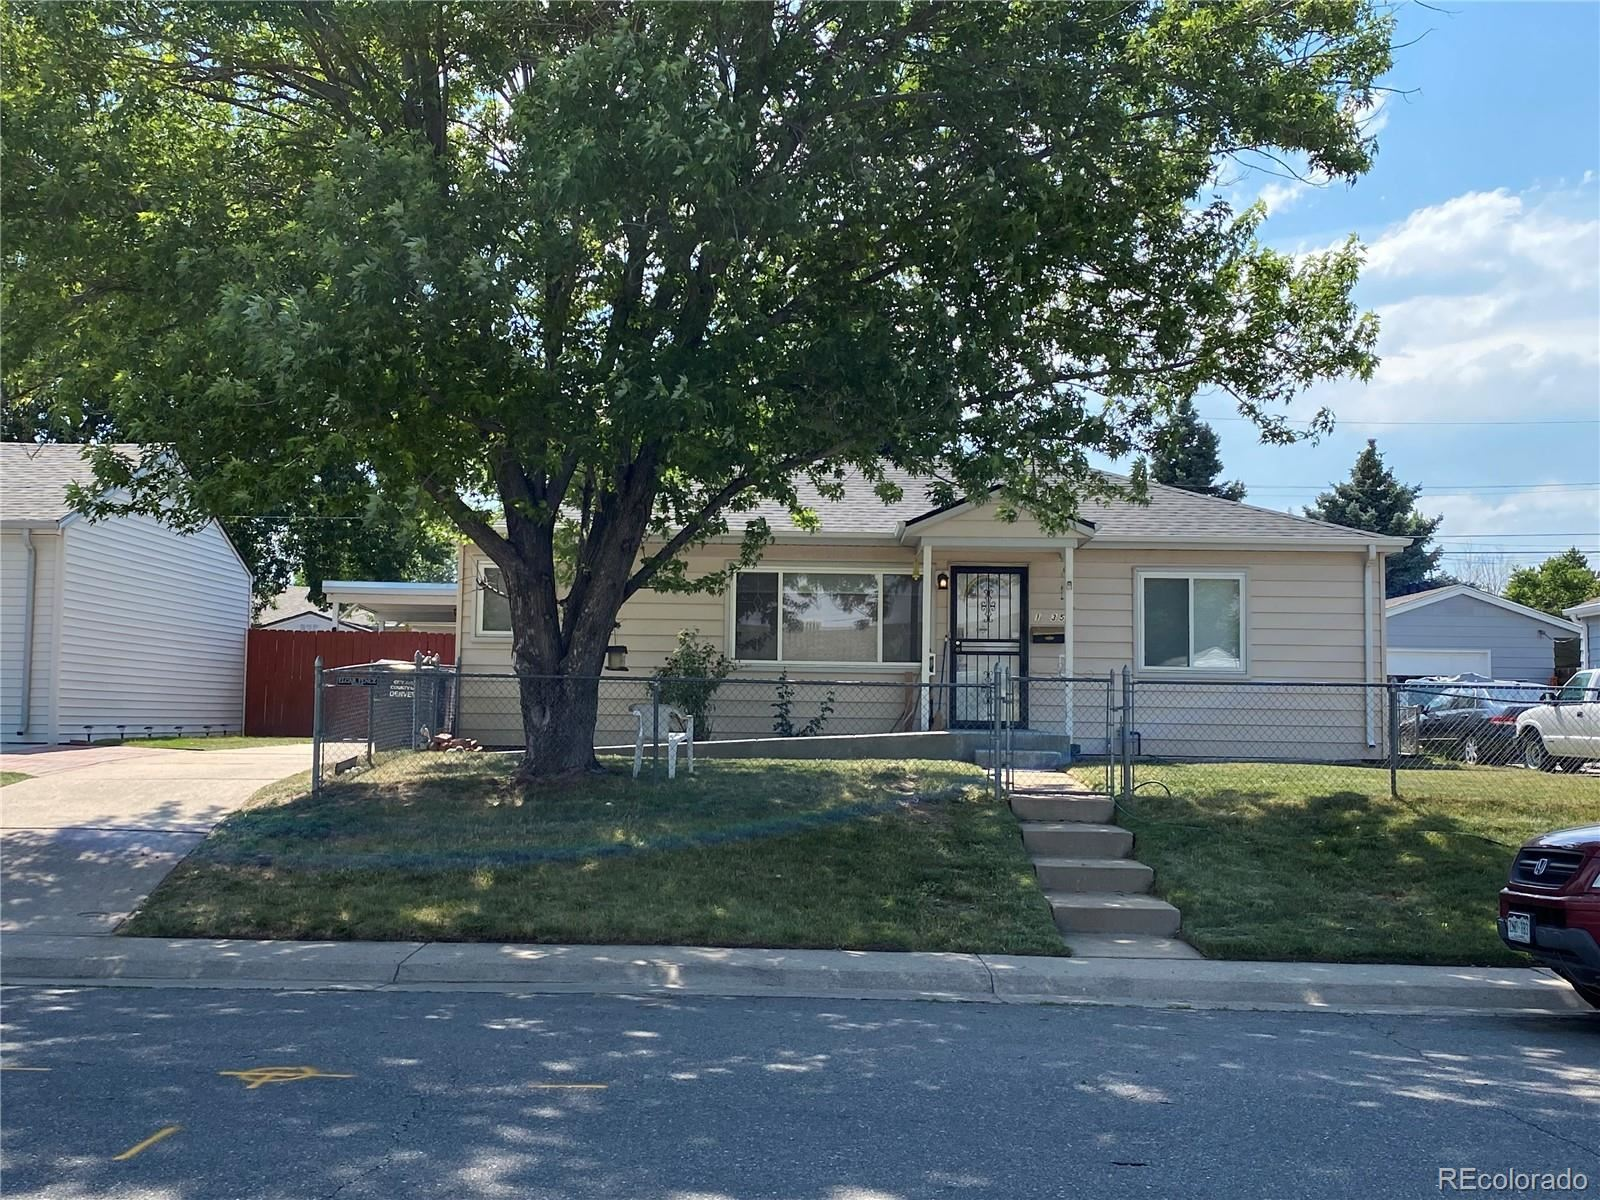 1435 S Utica Street, Denver, CO 80219 - #: 8832048